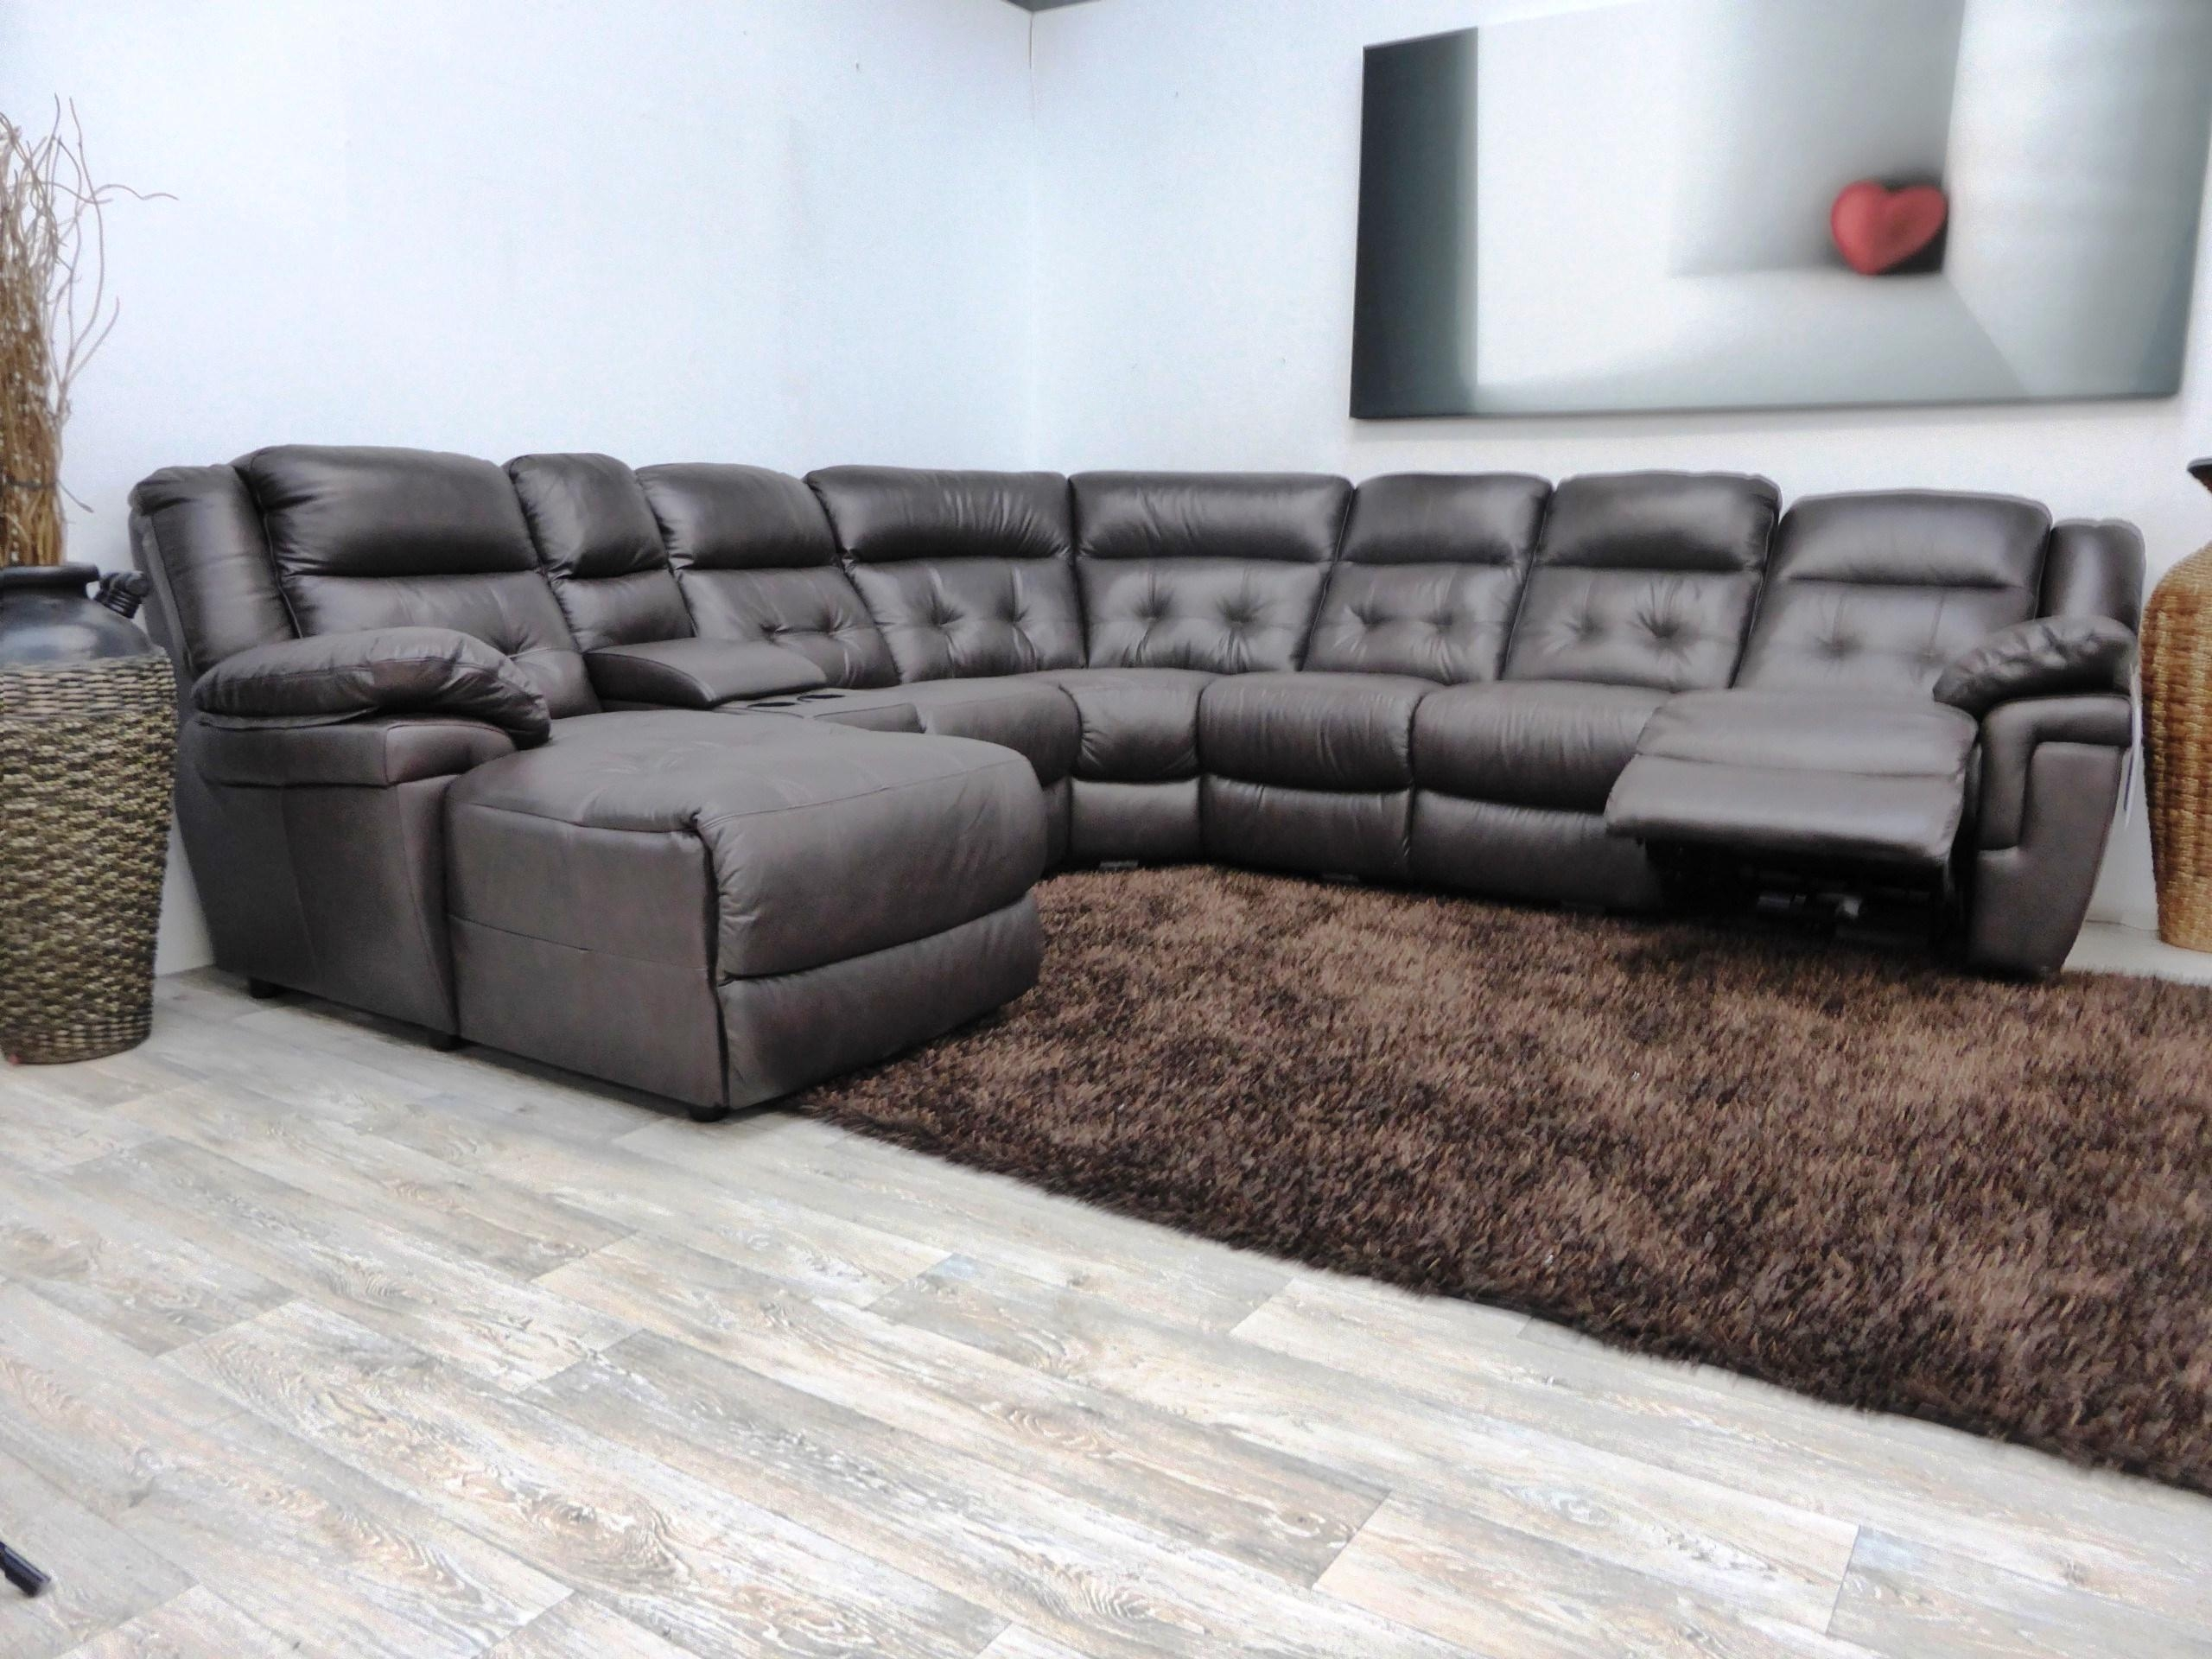 Comfortable Chaise Sofa 15 Collection Of Comfortable Sectional Sofa Ideas